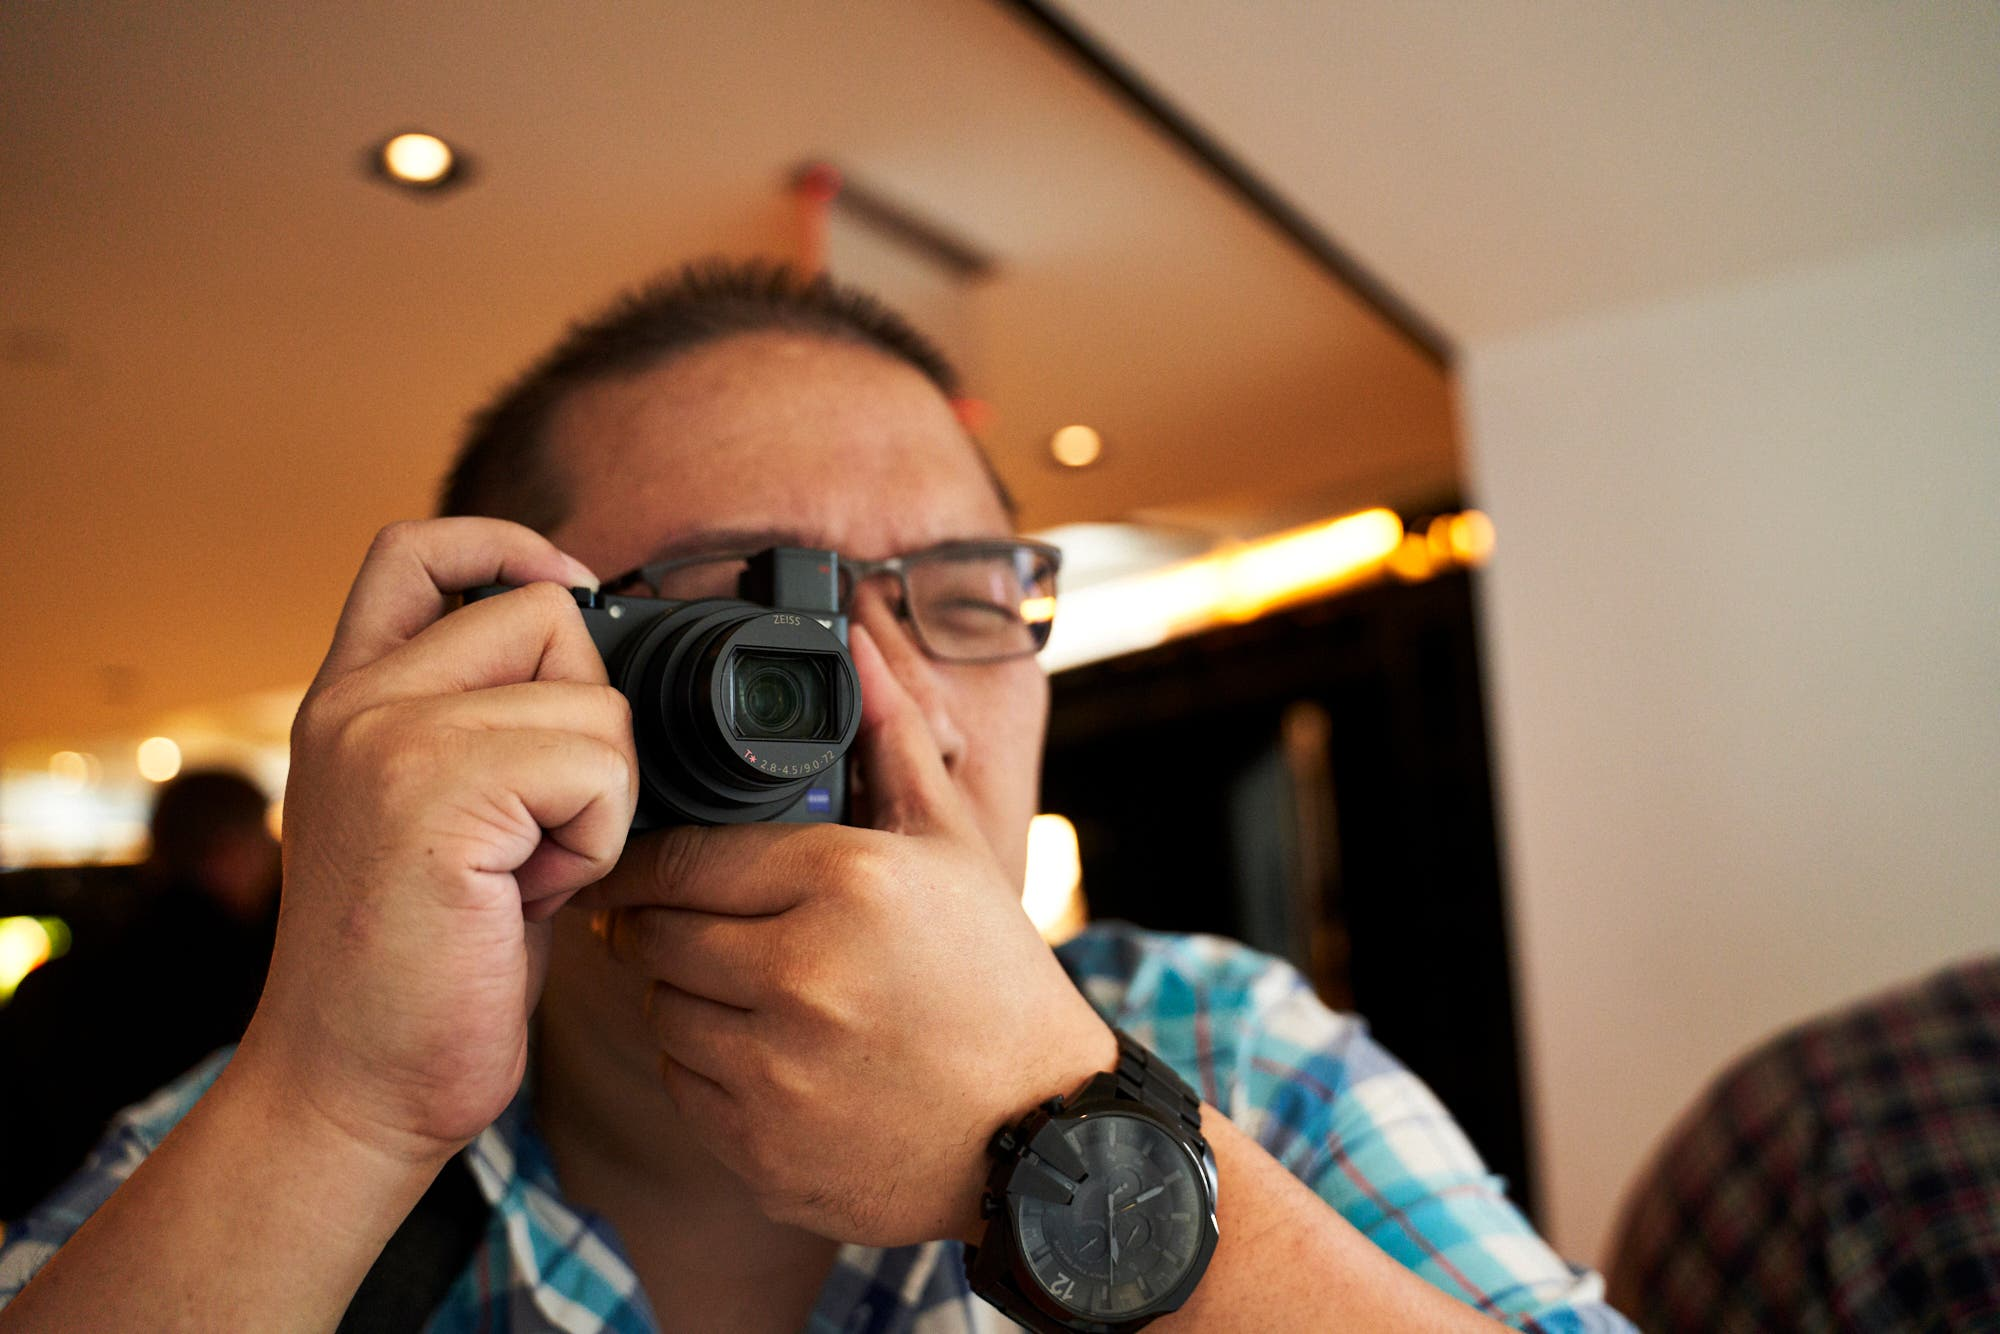 The Slower Lens on the Sony RX100 VI May Turn Bokeh Lovers Off